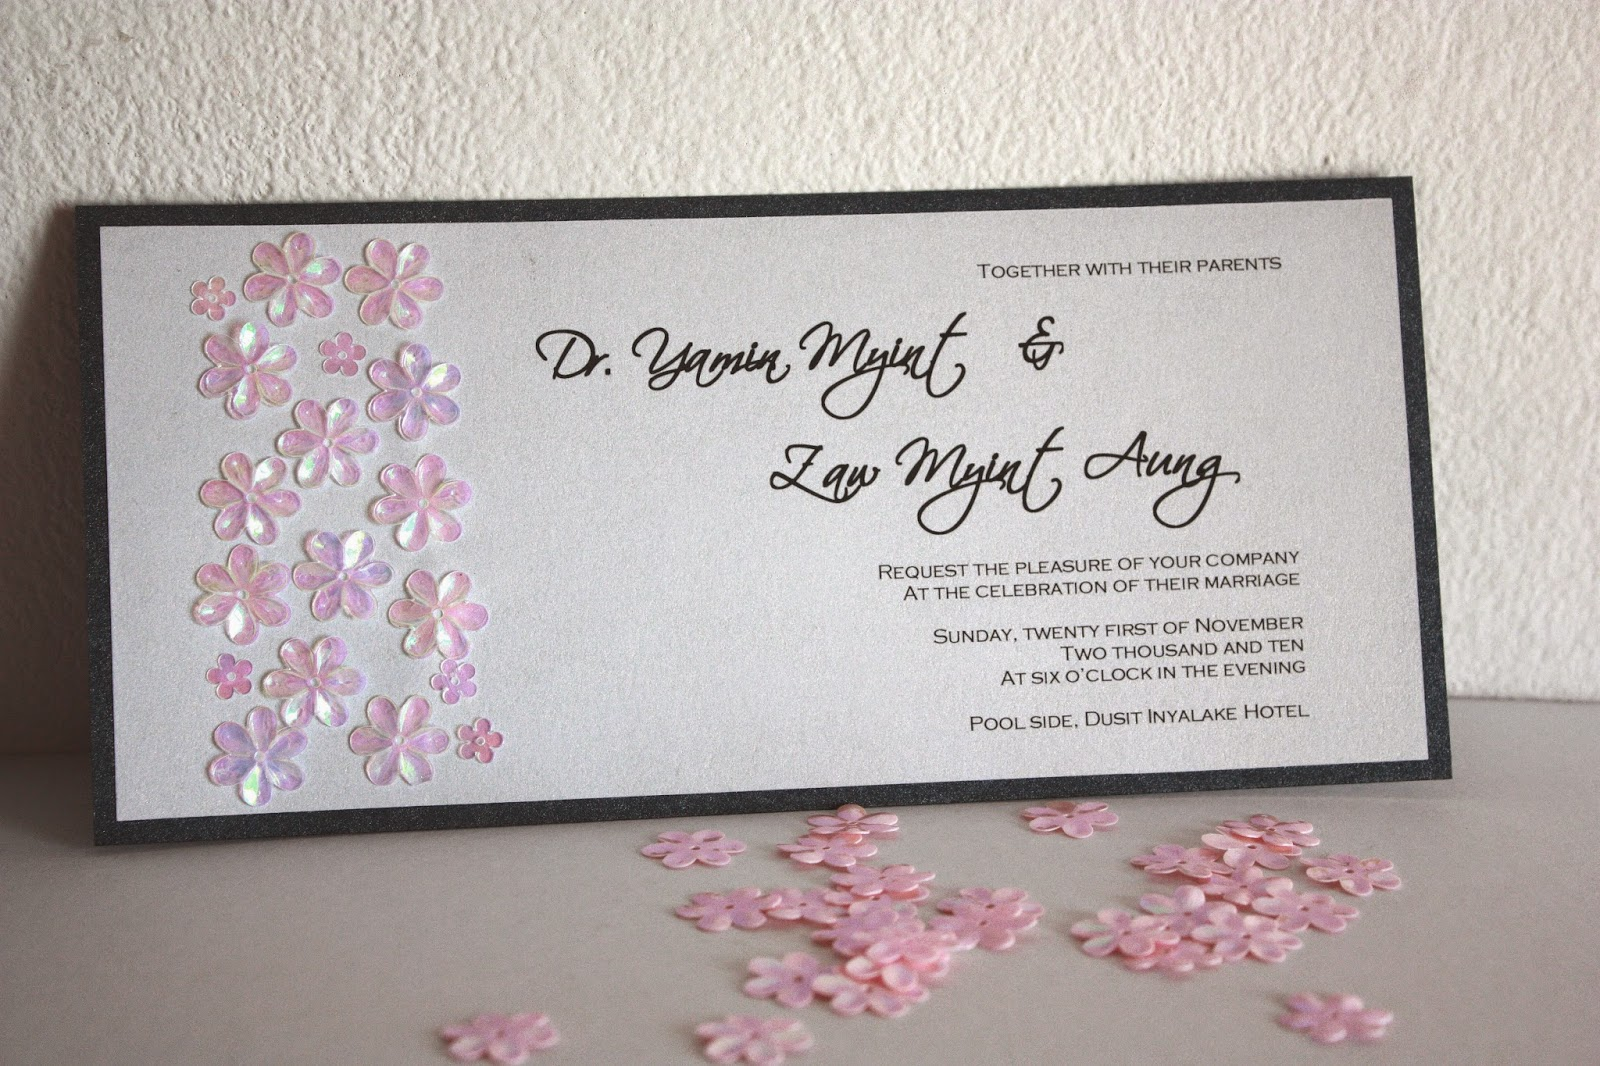 Floral sequin handmade wedding invitation card